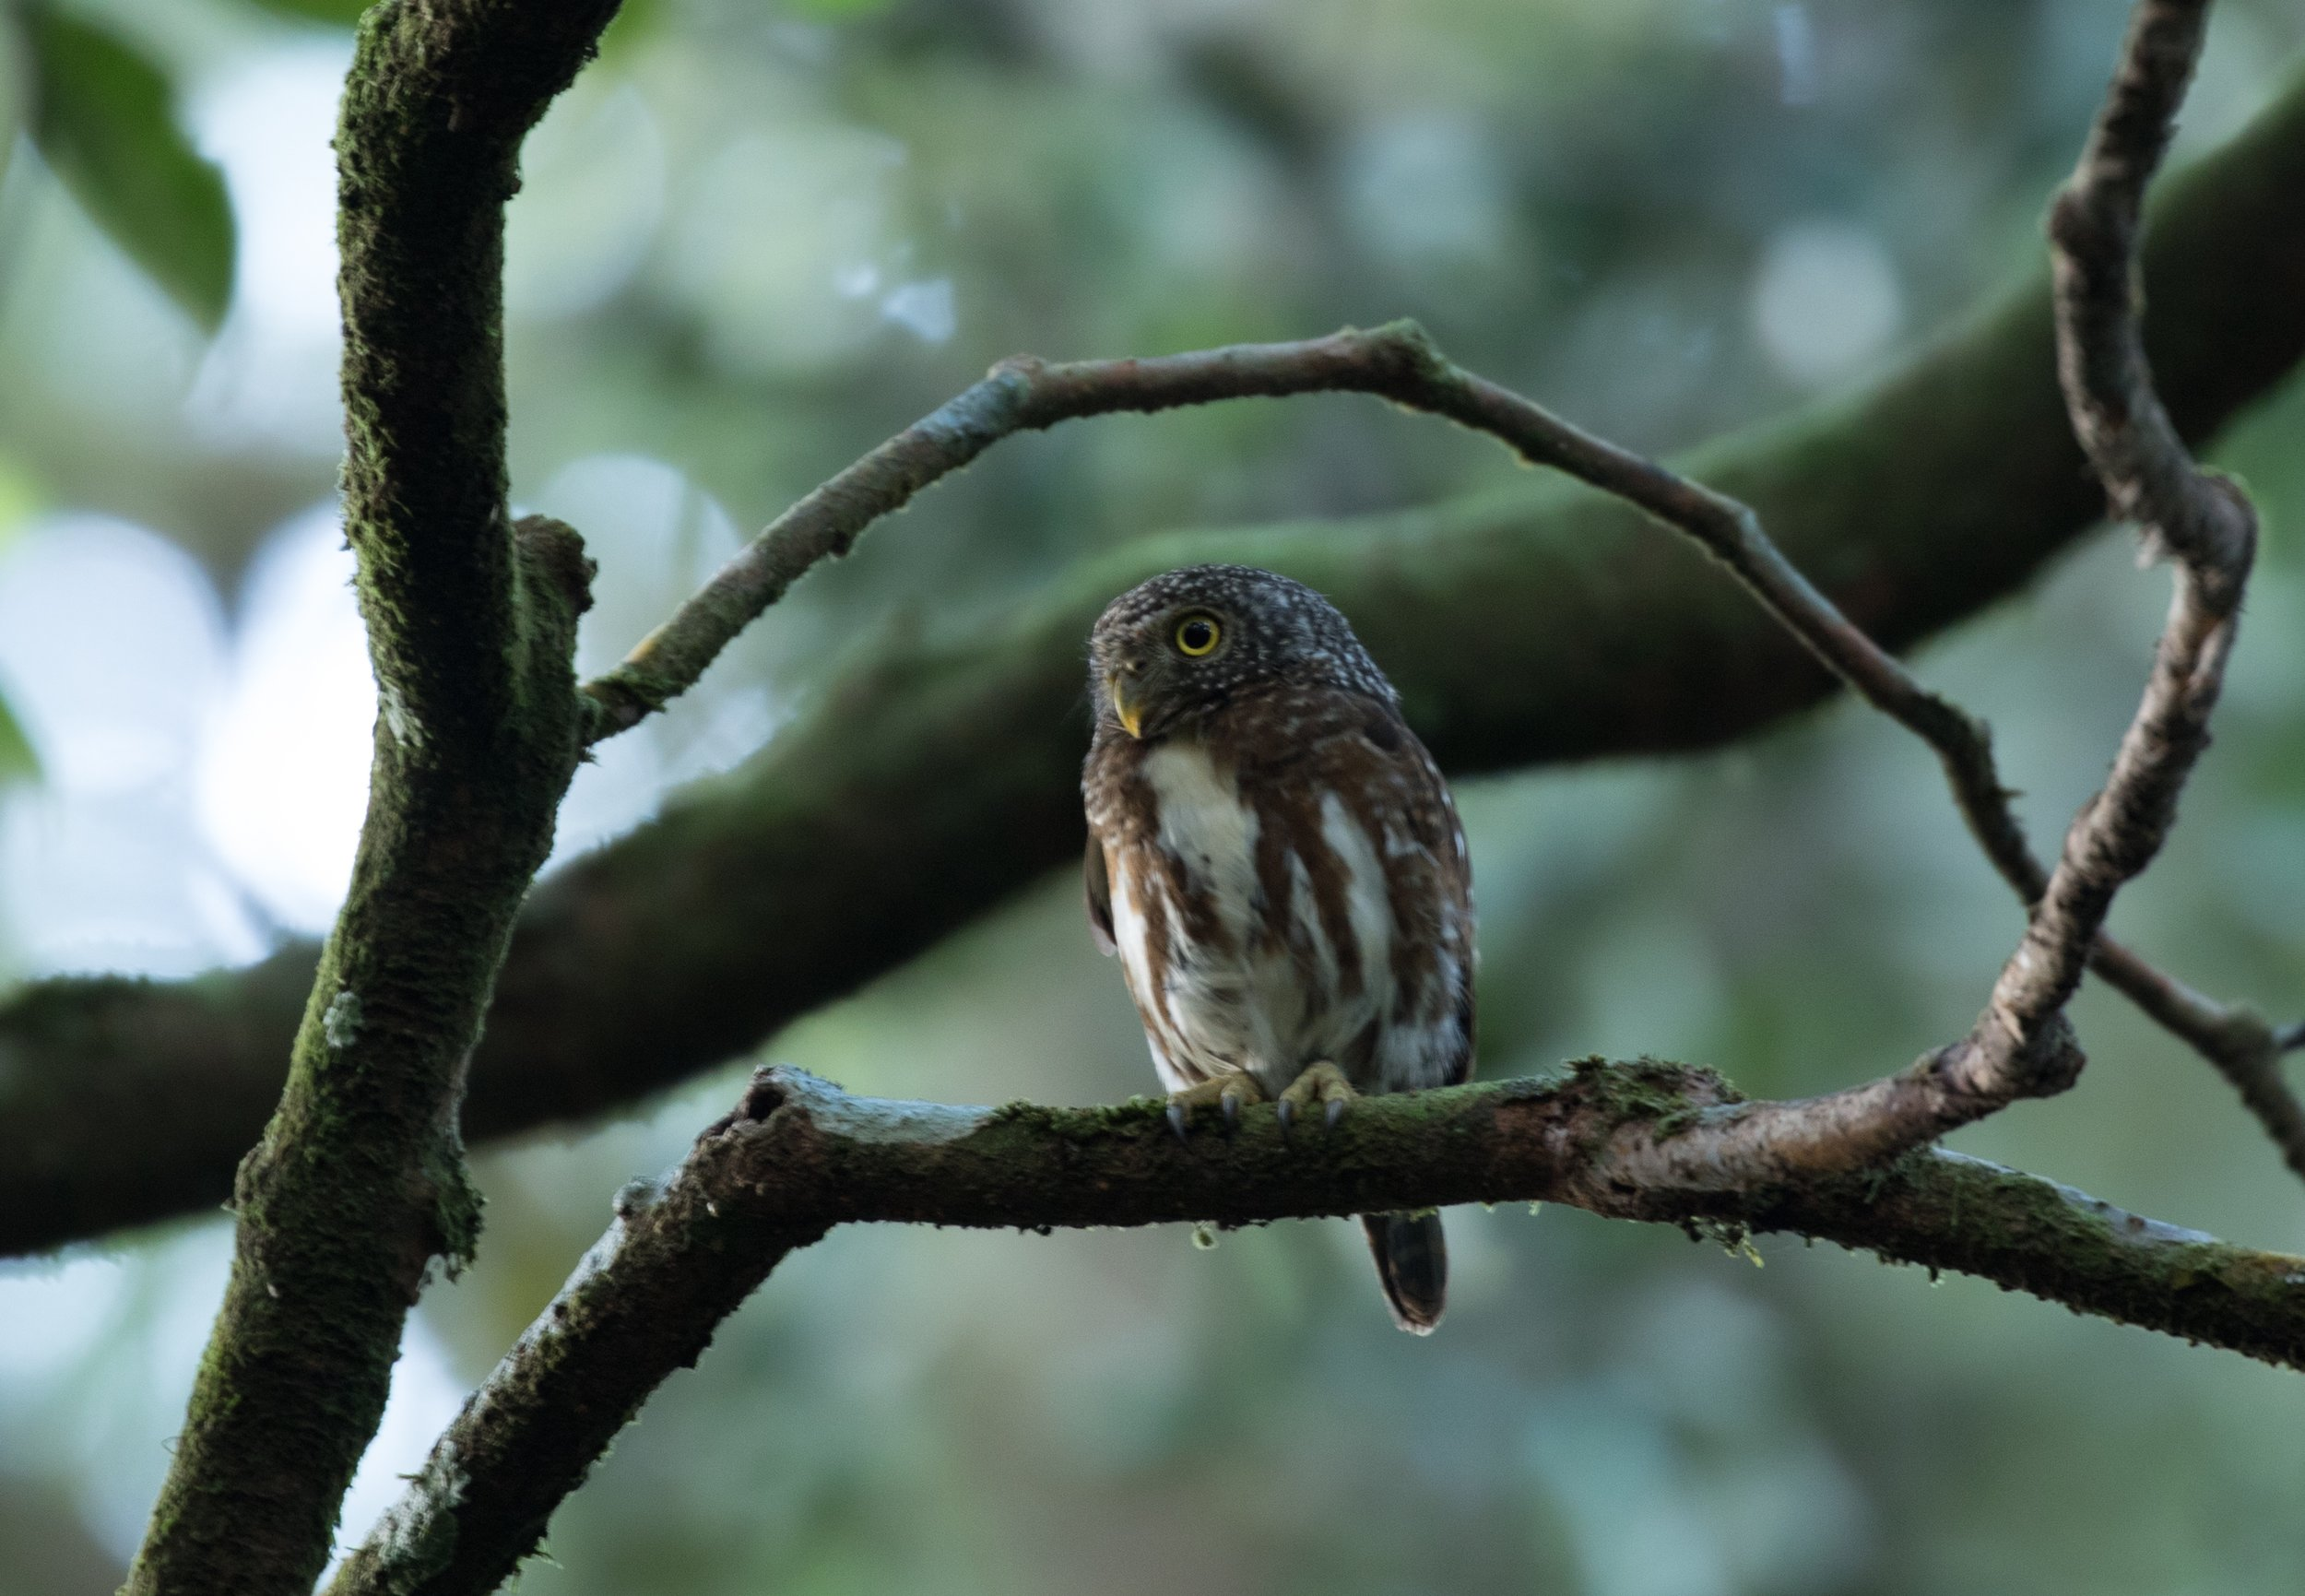 A Collared Owlet and I were both roaming the forest at 6:30 a.m.